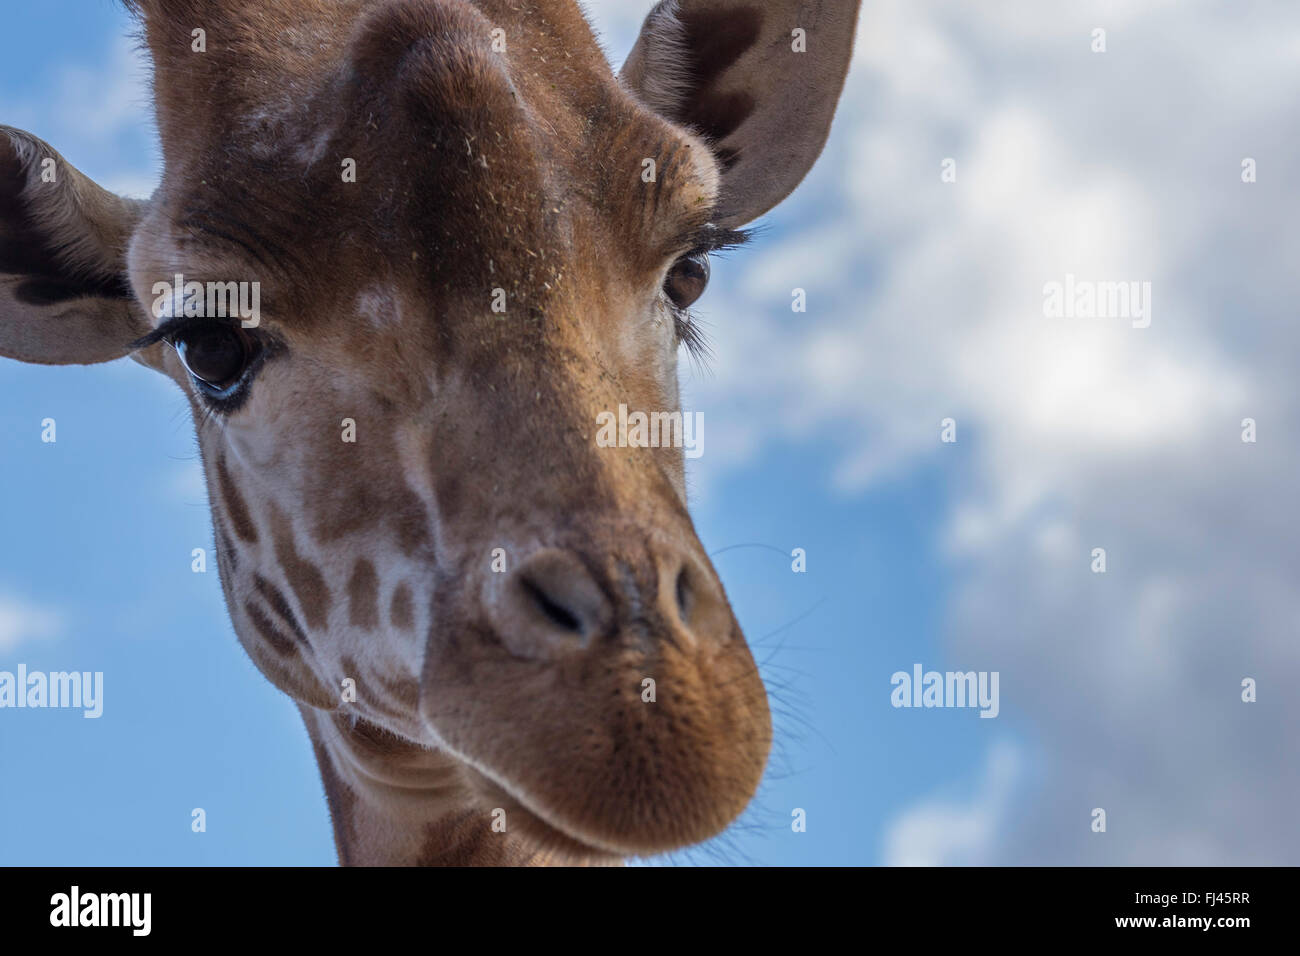 A lovely giraffe up close - Stock Image